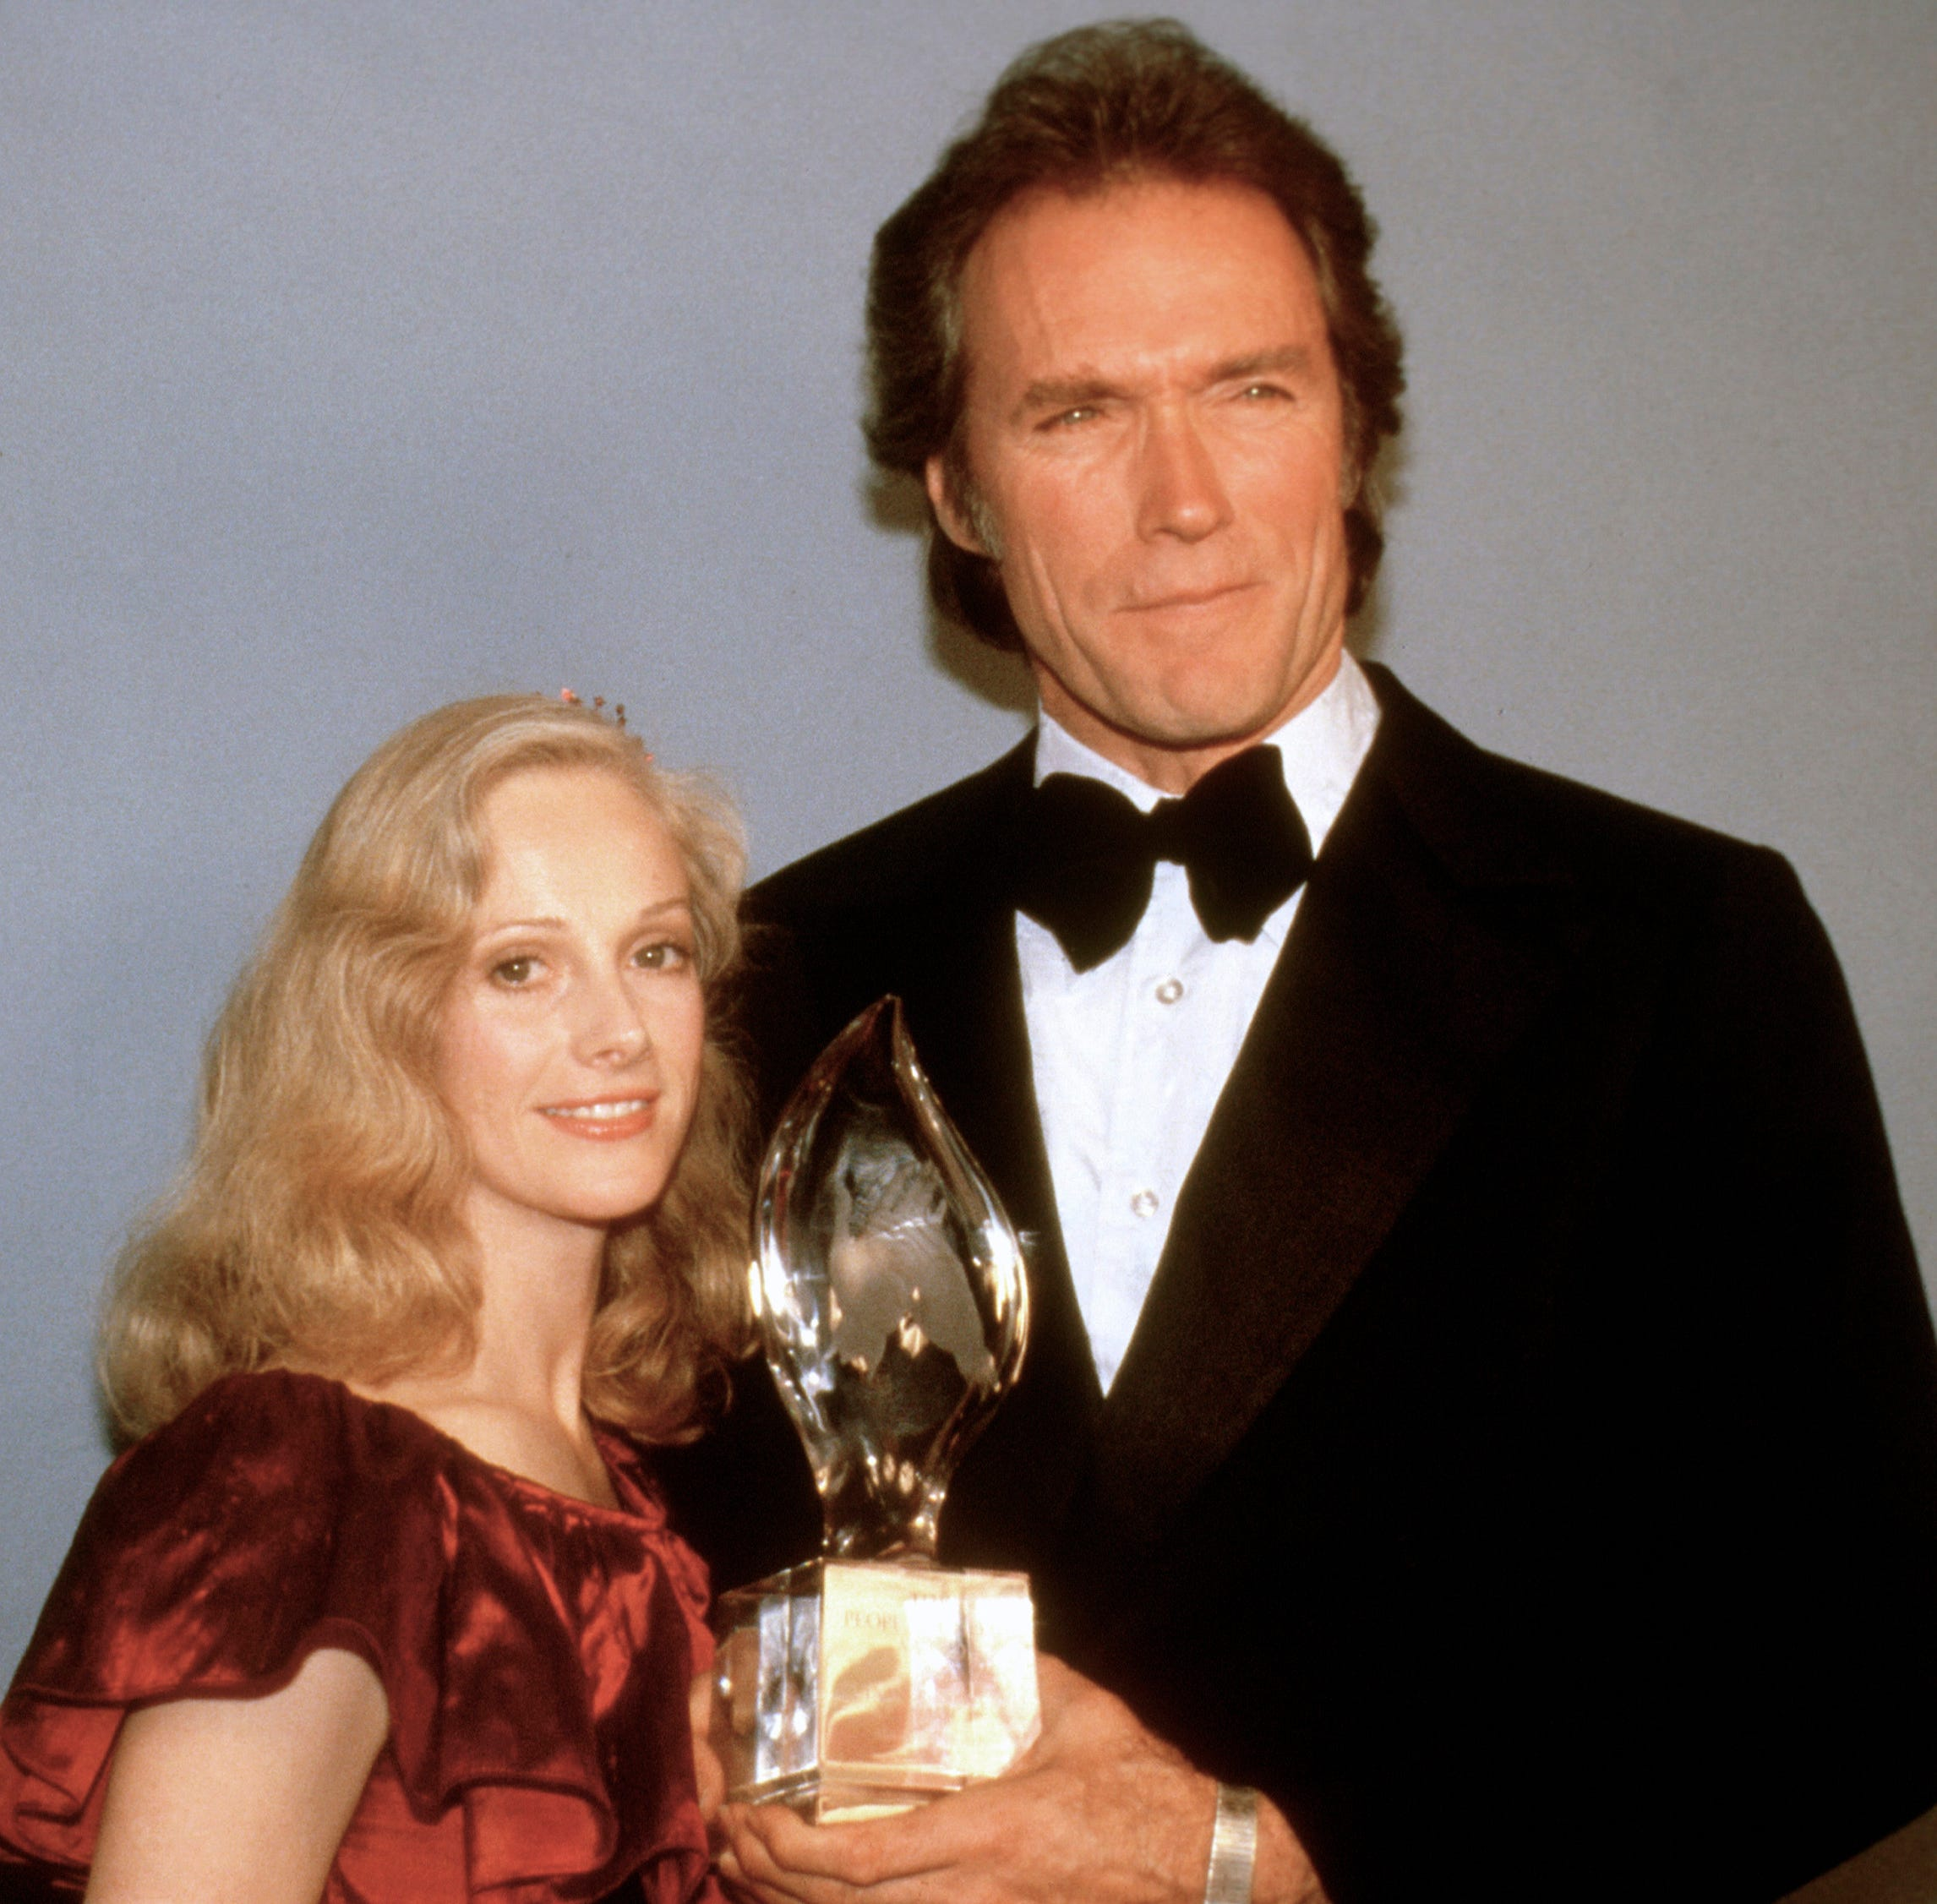 Oscar-nominated actress, Tennessee native Sondra Locke dies at 74